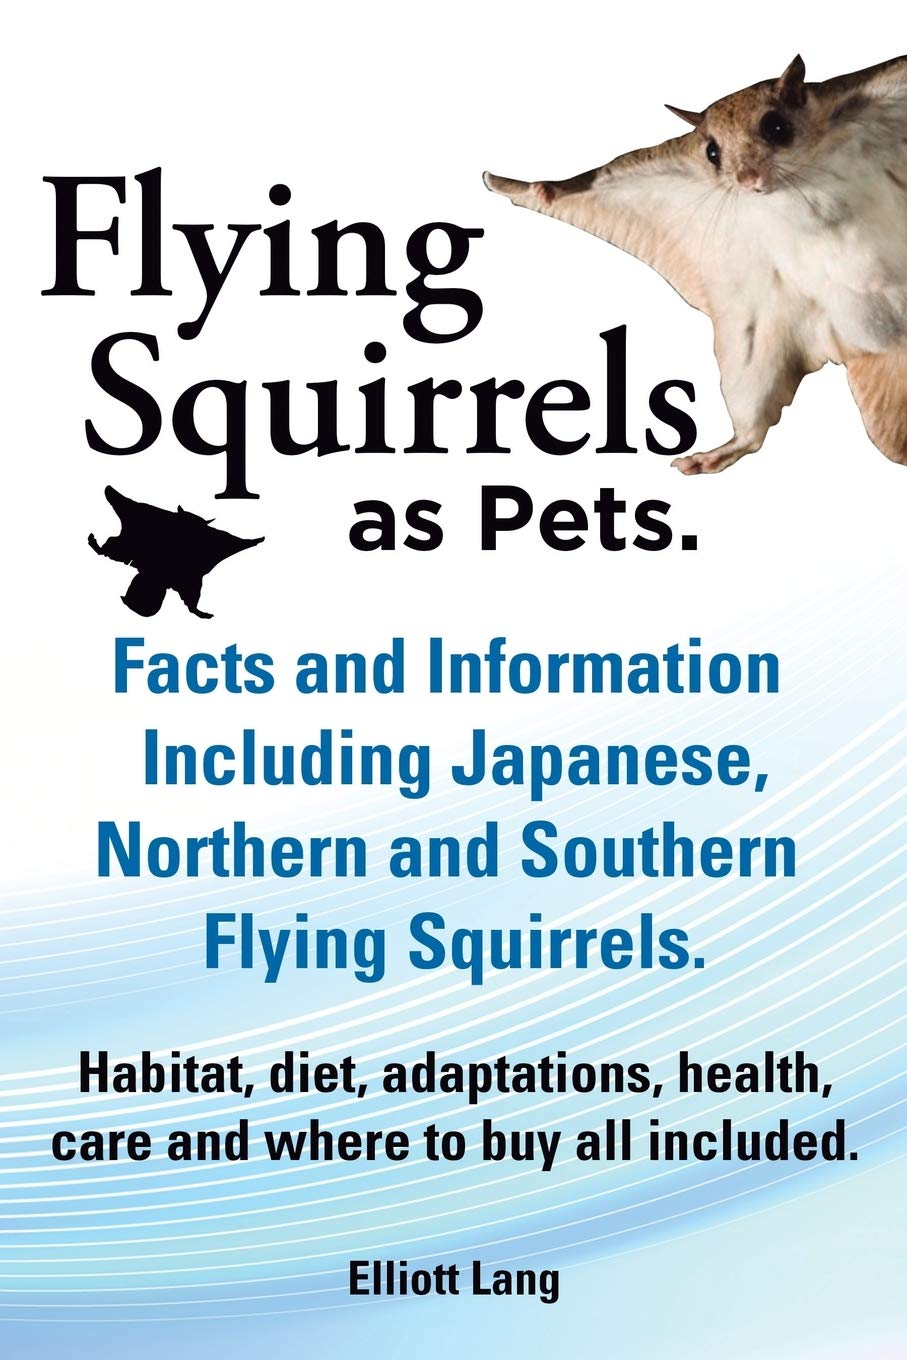 Image OfFlying Squirrels As Pets. Facts And Information. Including Japanese, Northern And Southern Flying Squirrels. Habitat, Diet...